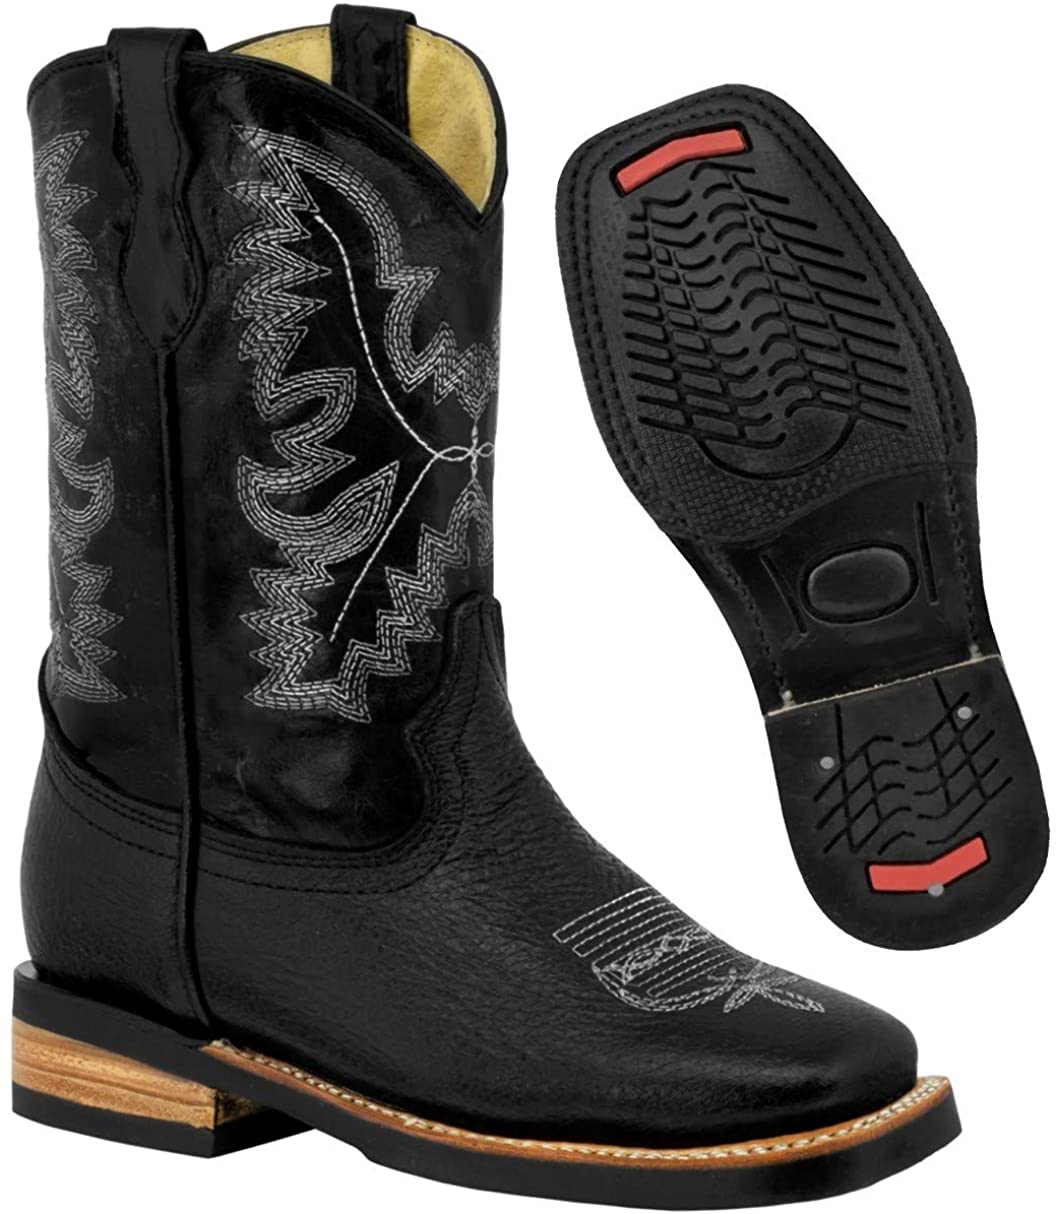 Kids Black Western Cowboy Boots Rodeo Leather Square Toe 12 Toddler